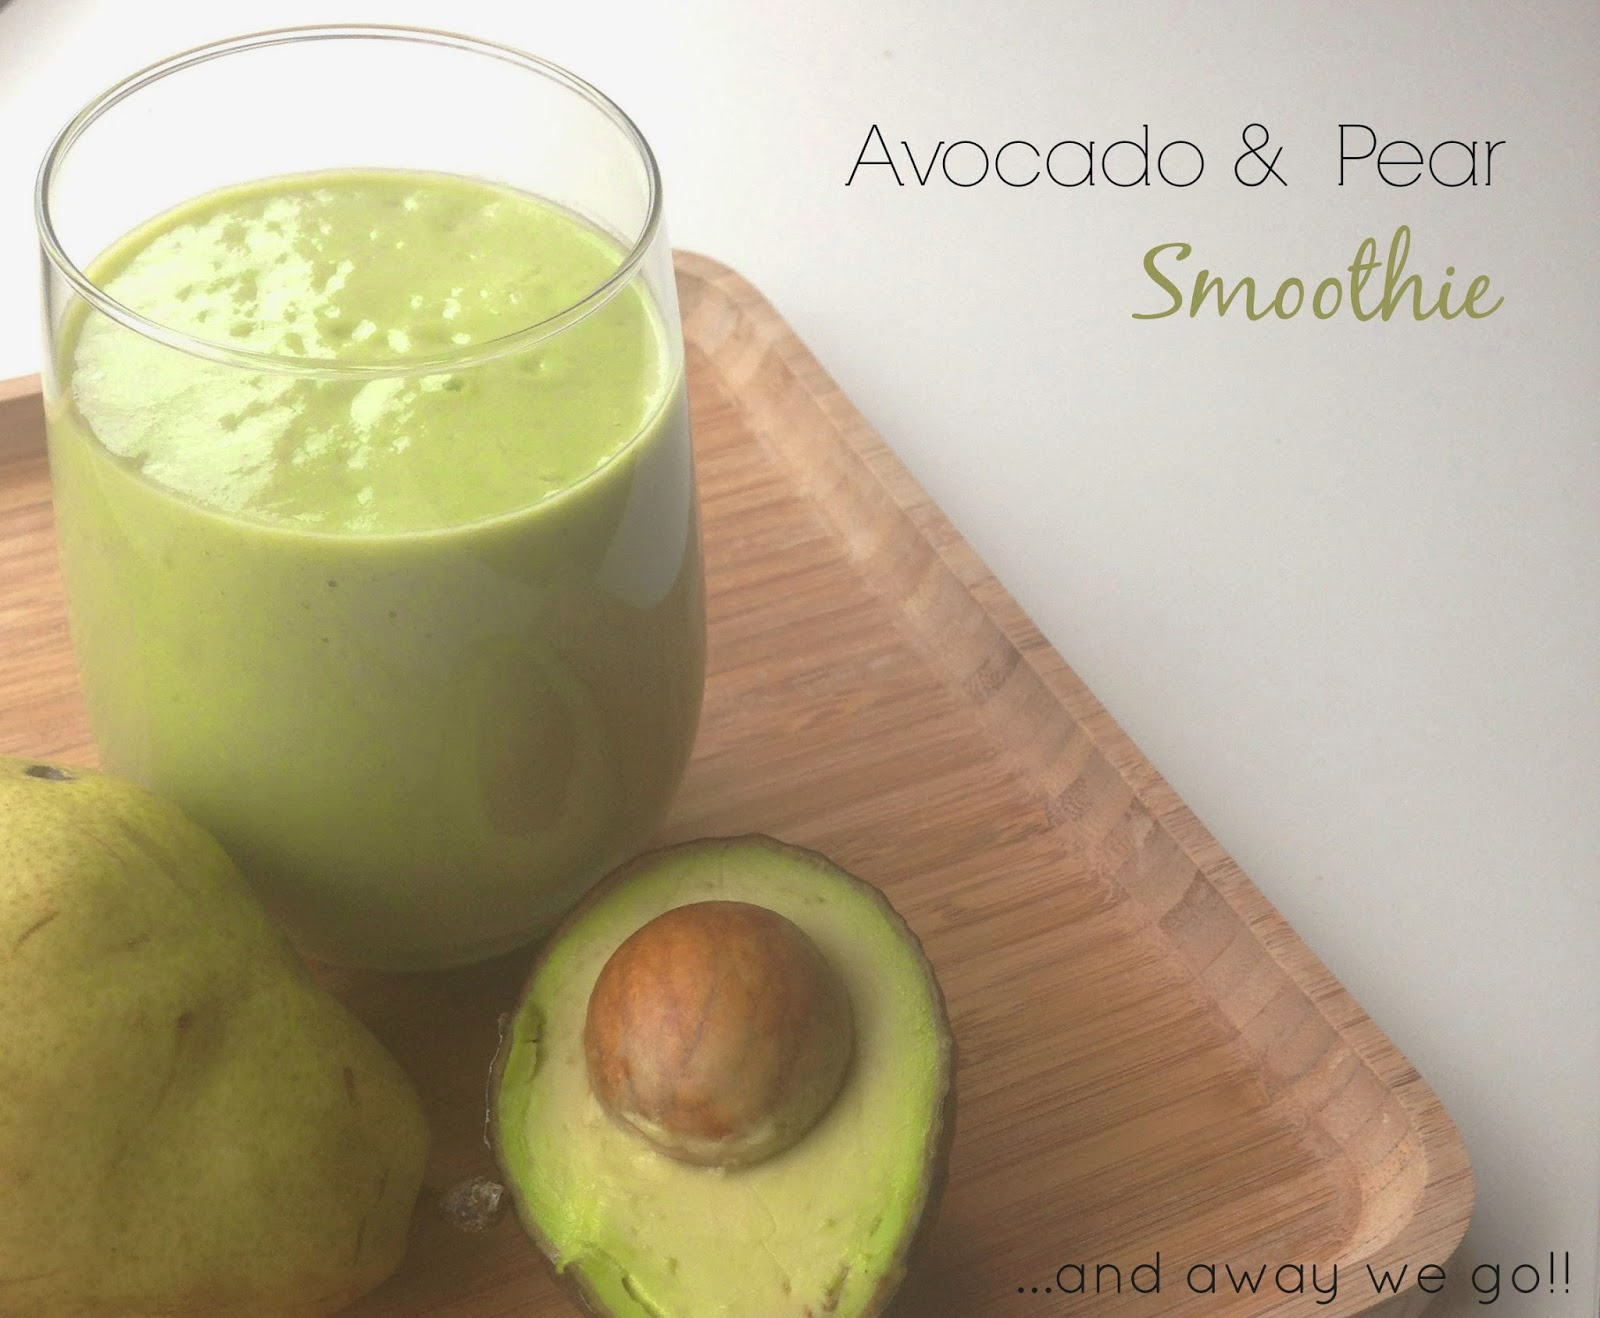 avocado & pear smoothie